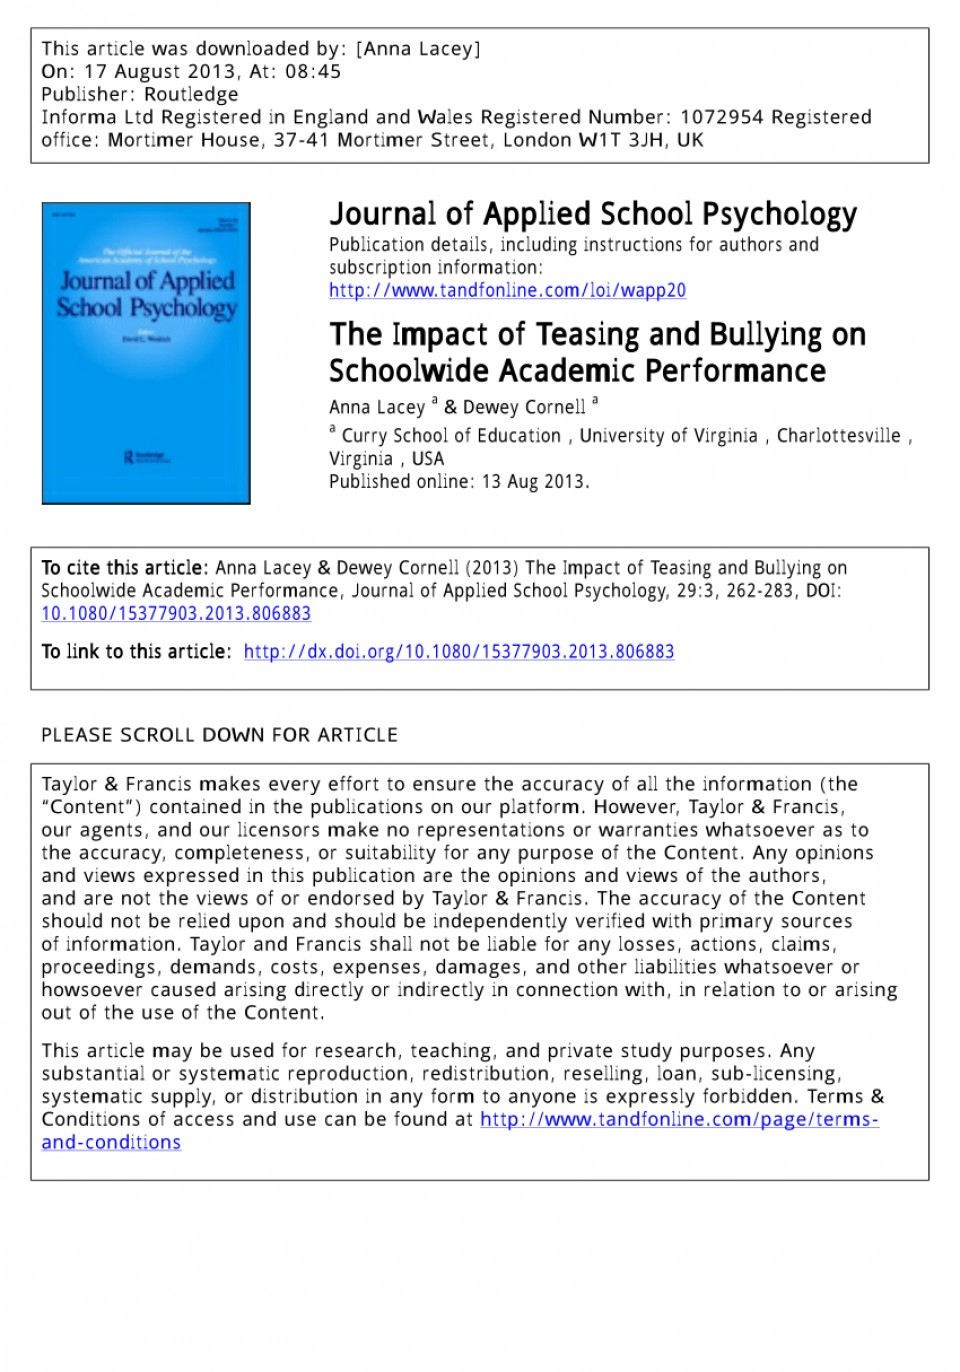 004 Research Paper Psychological Effects Of Bullying Breathtaking 960